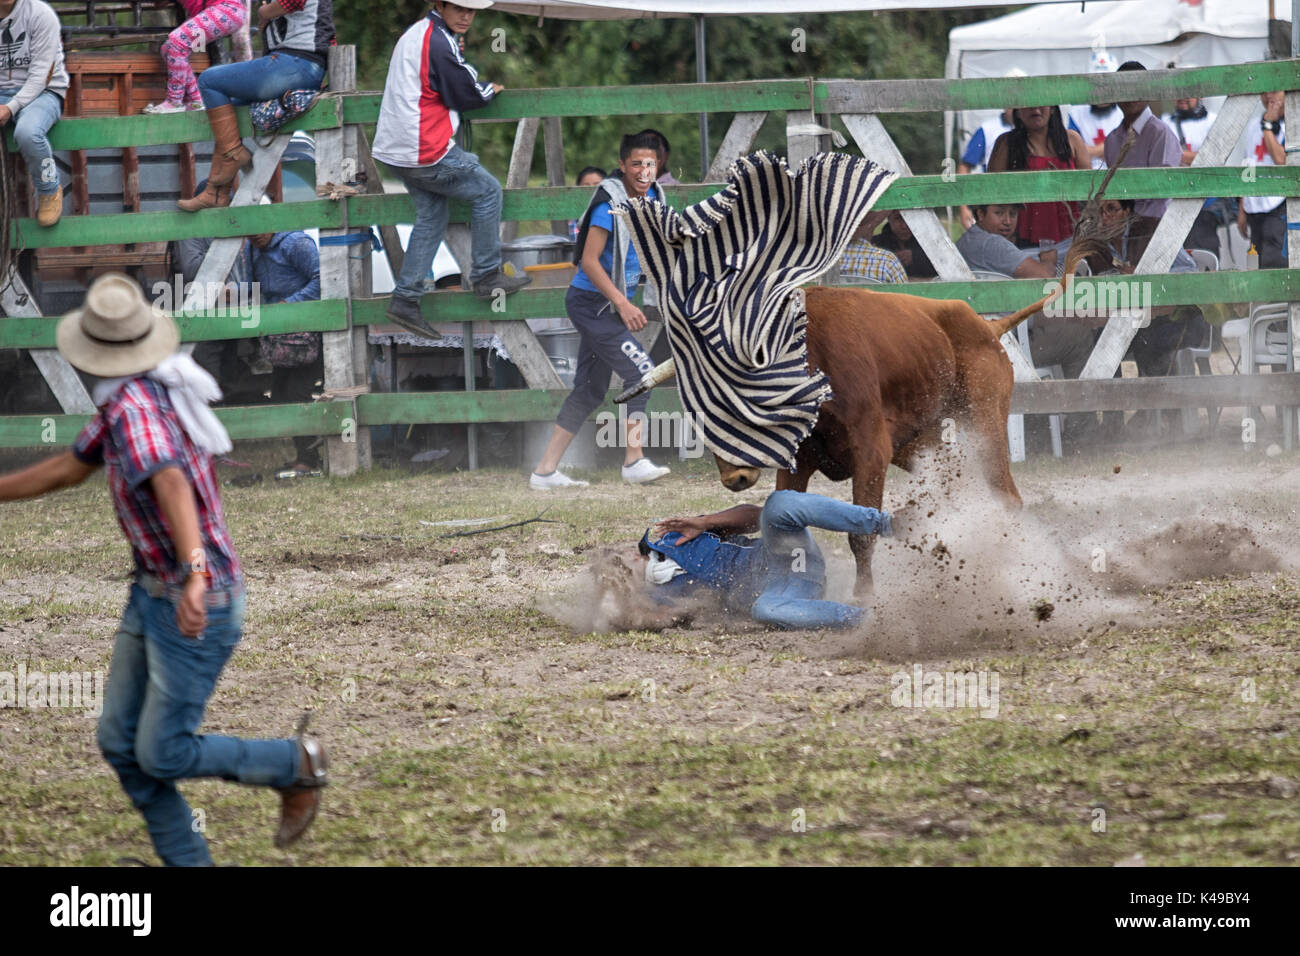 May 28, 2017 Sangolqui, Ecuador: young man ran over by a bull at a rural amateur rodeo in the Andes - Stock Image